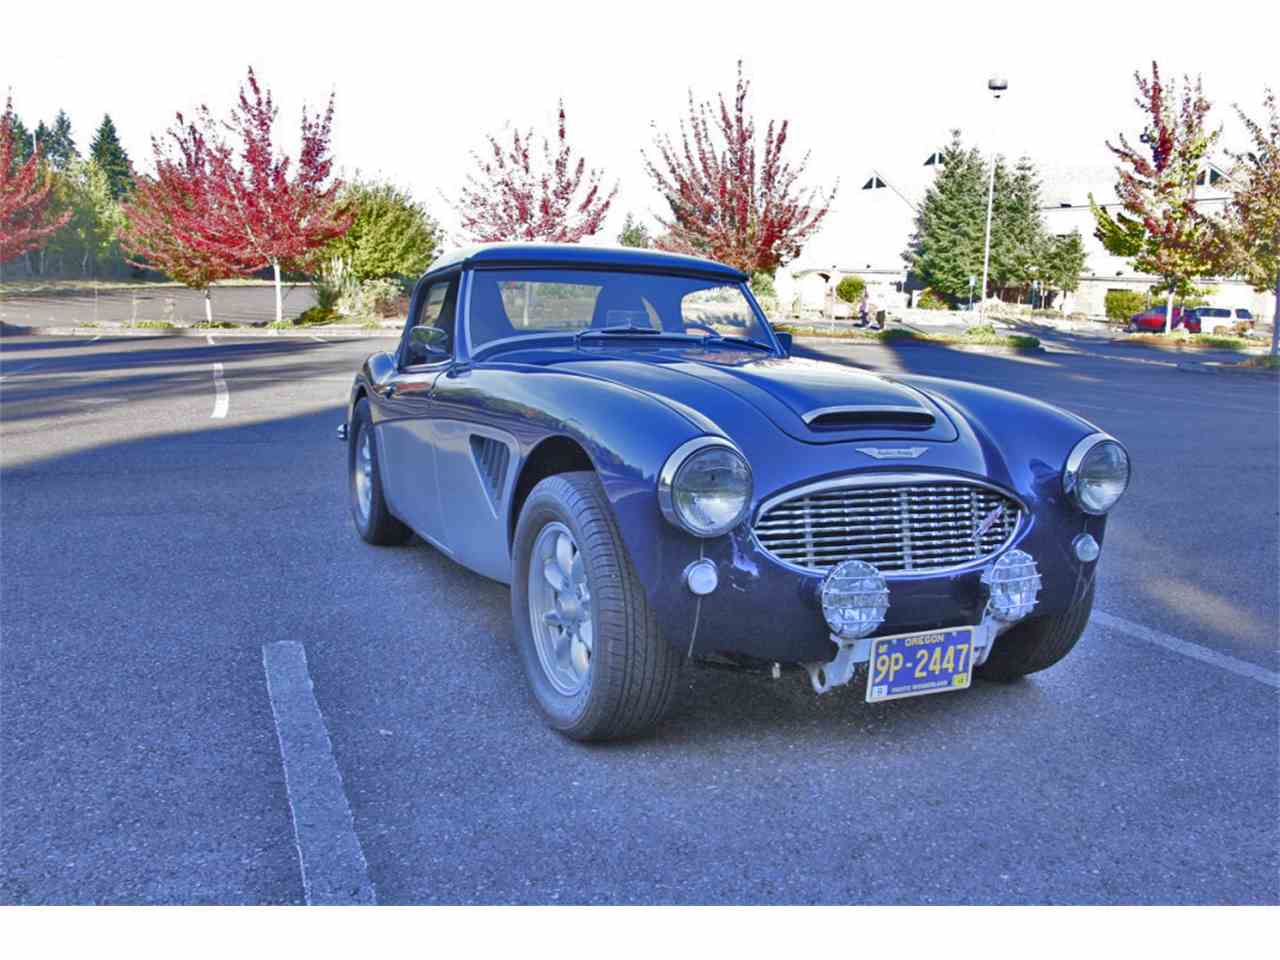 Large Picture of Classic '59 Austin-Healey 3000 Mark I BN7 - $45,000.00 Offered by a Private Seller - LU6O